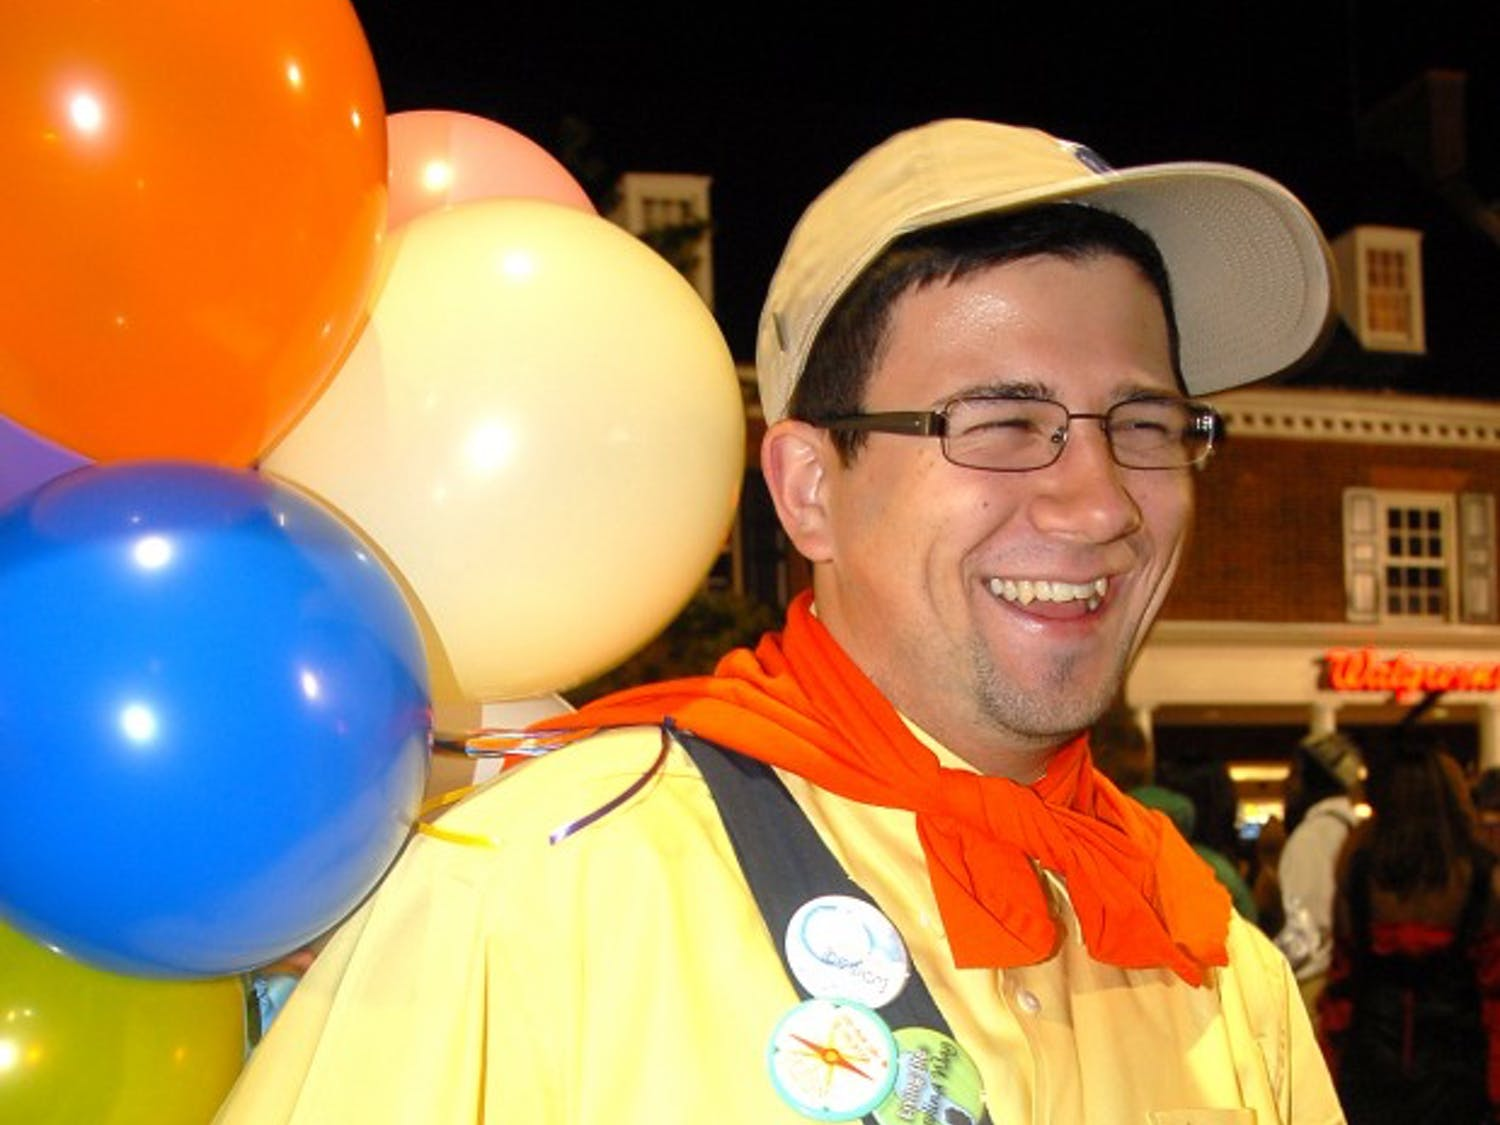 """Jesse Vineyard, a senior English major, poses as the character Russell from the movie """"Up."""""""